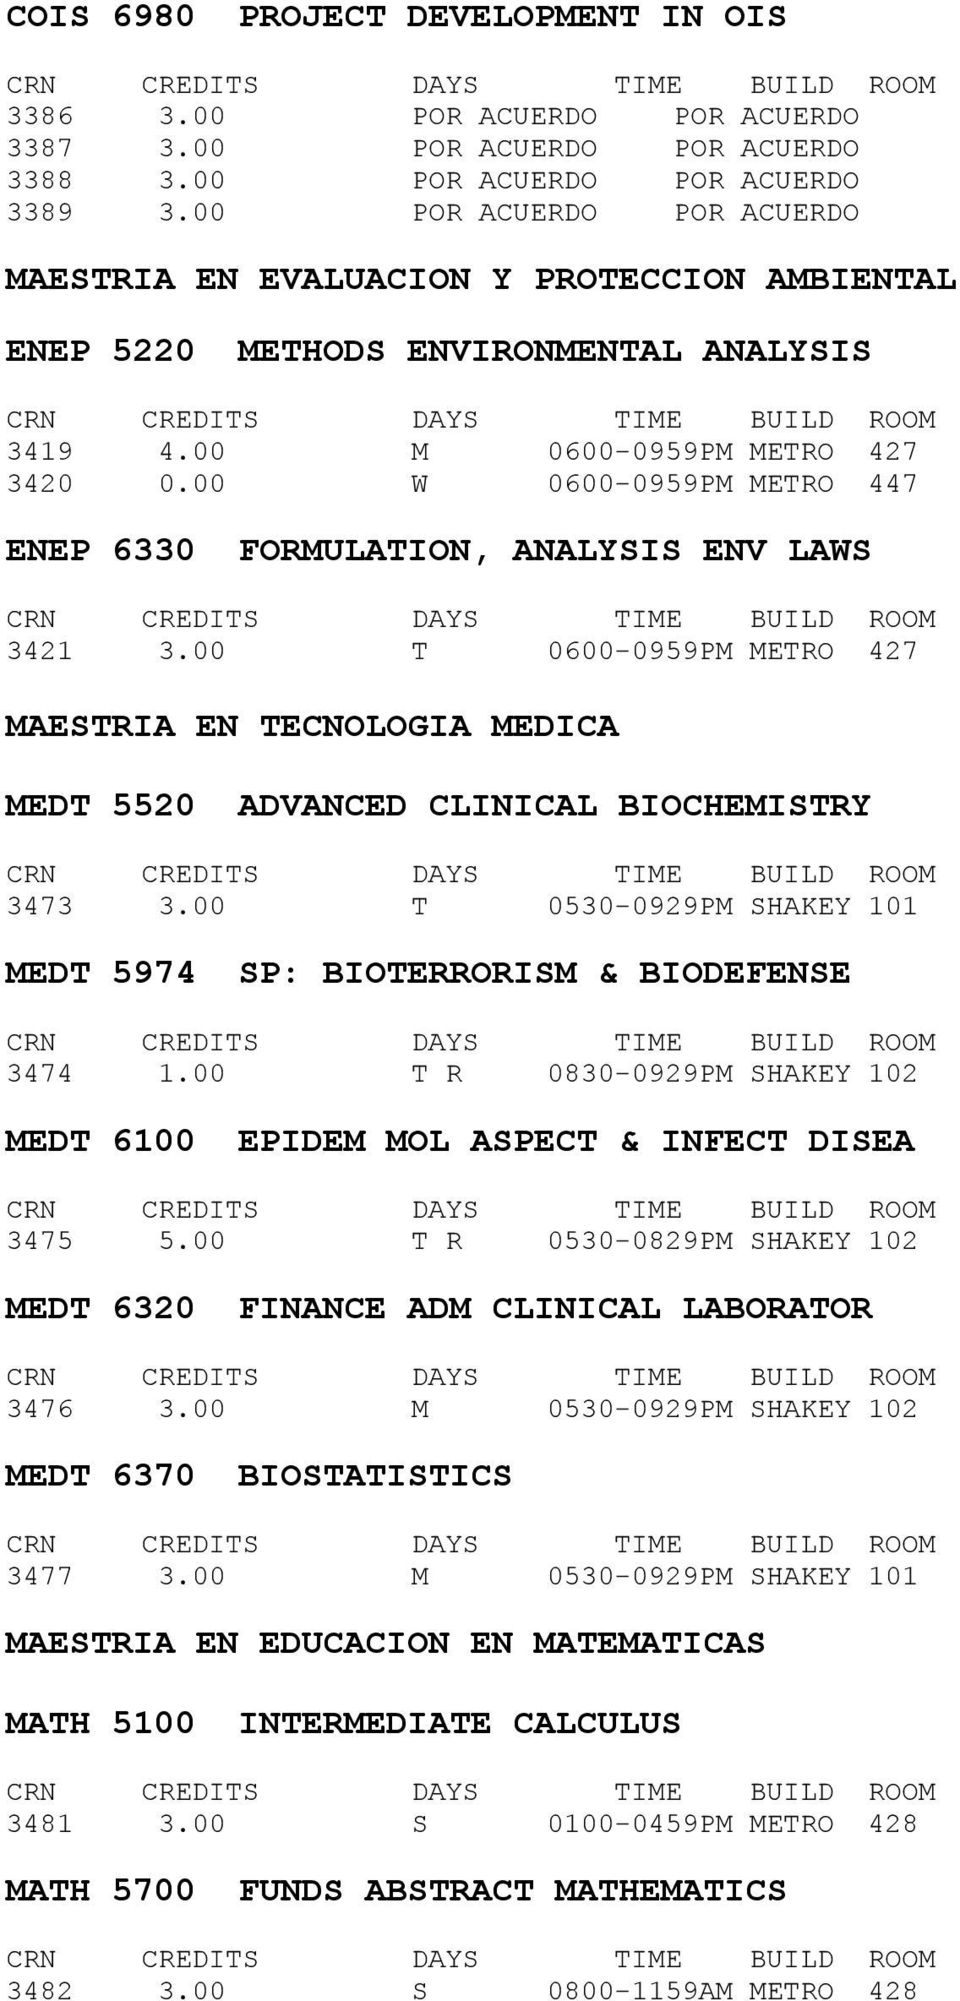 00 W 0600-0959PM METRO 447 ENEP 6330 FORMULATION, ANALYSIS ENV LAWS 3421 3.00 T 0600-0959PM METRO 427 MAESTRIA EN TECNOLOGIA MEDICA MEDT 5520 ADVANCED CLINICAL BIOCHEMISTRY 3473 3.